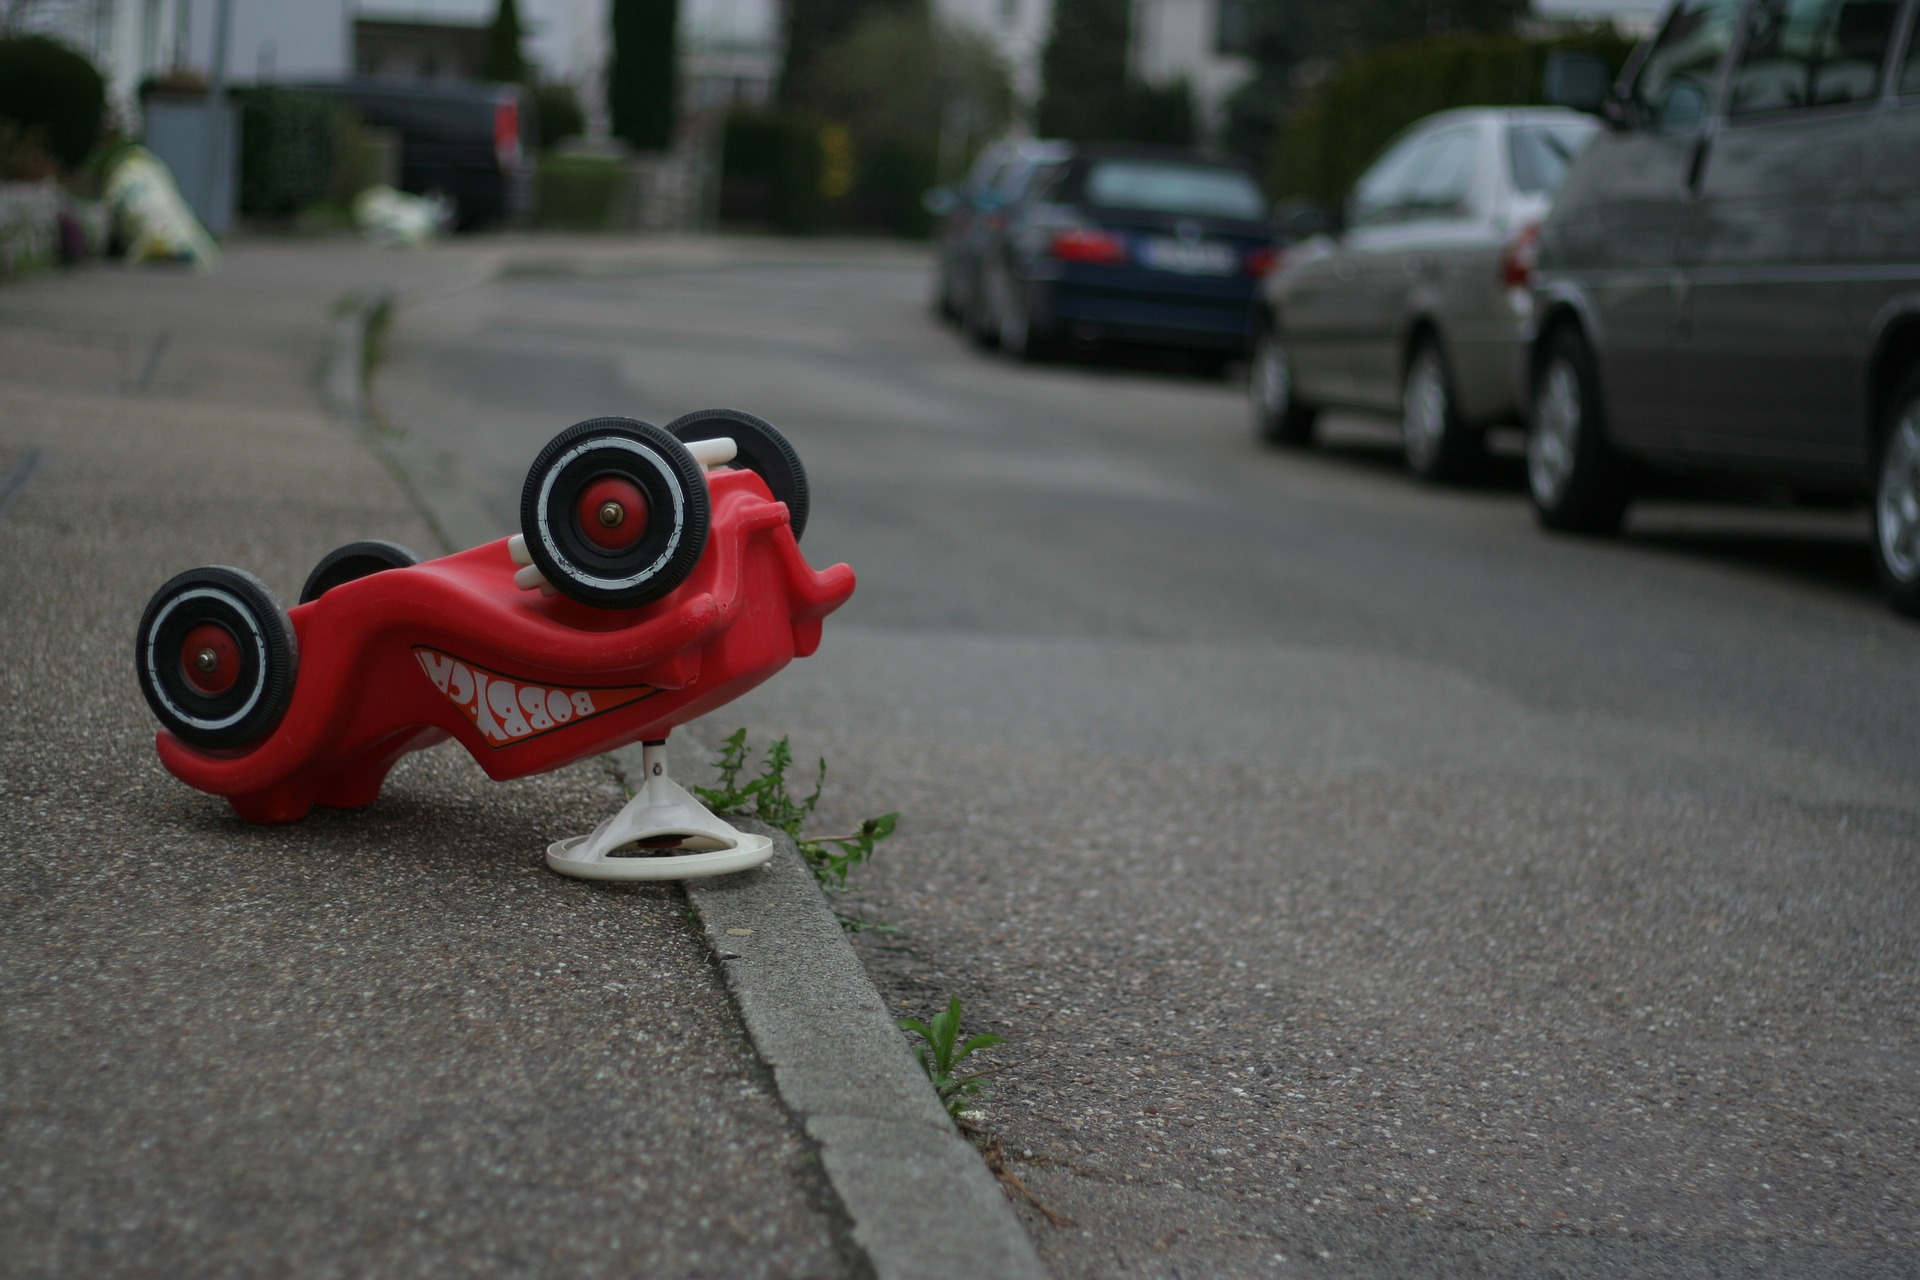 Red toy car flipped on curb